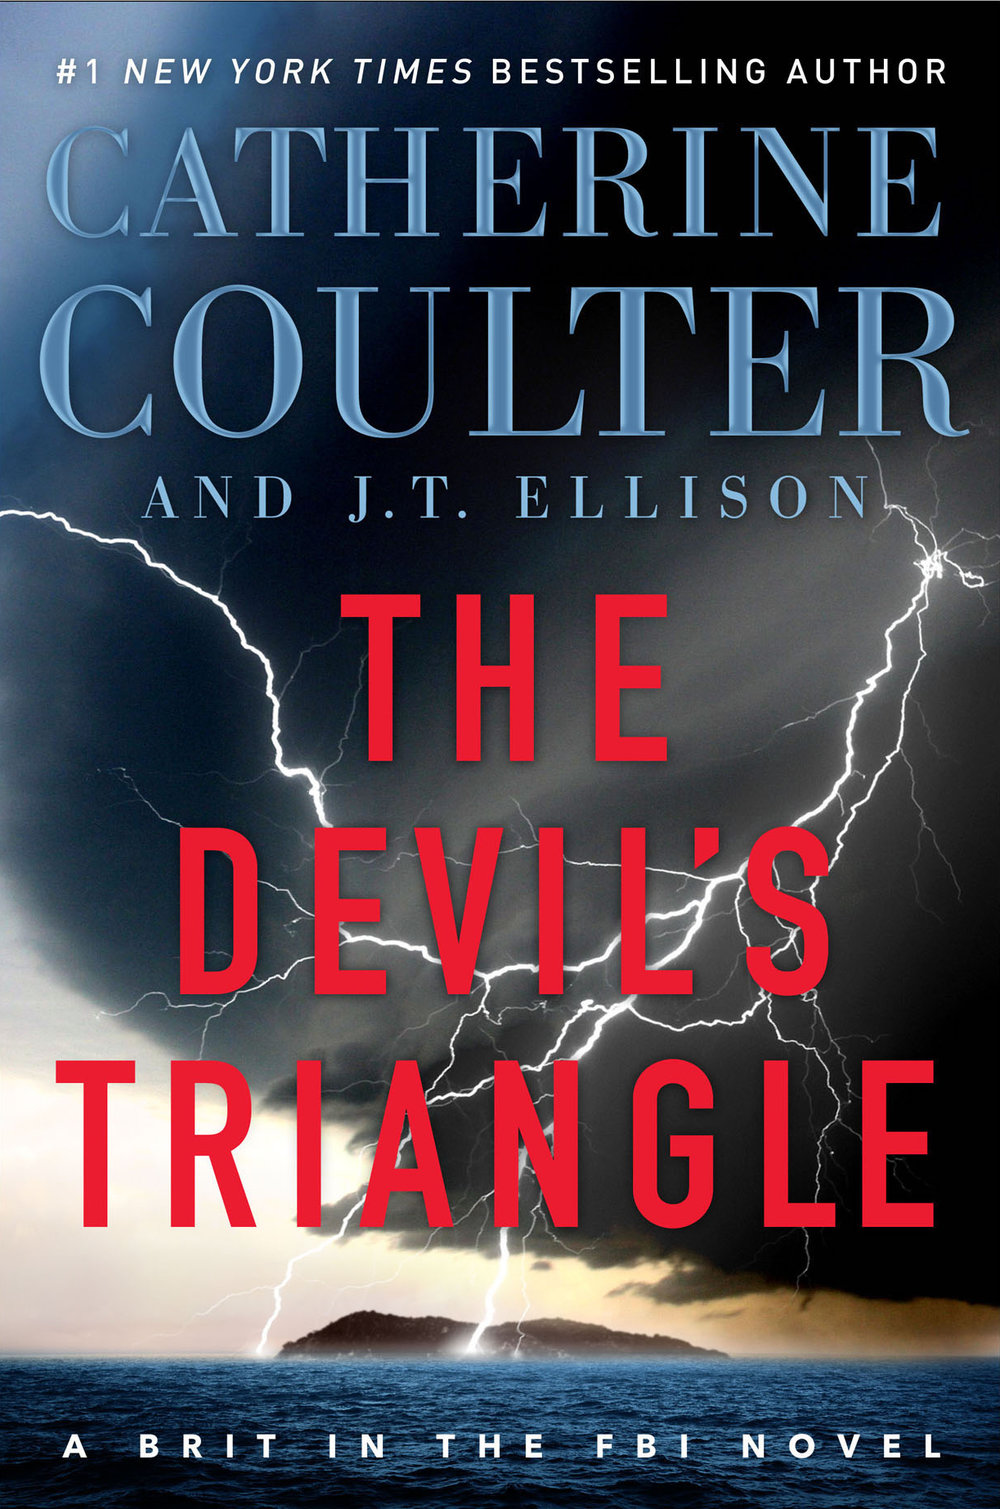 #4 - The Devil's Triangle